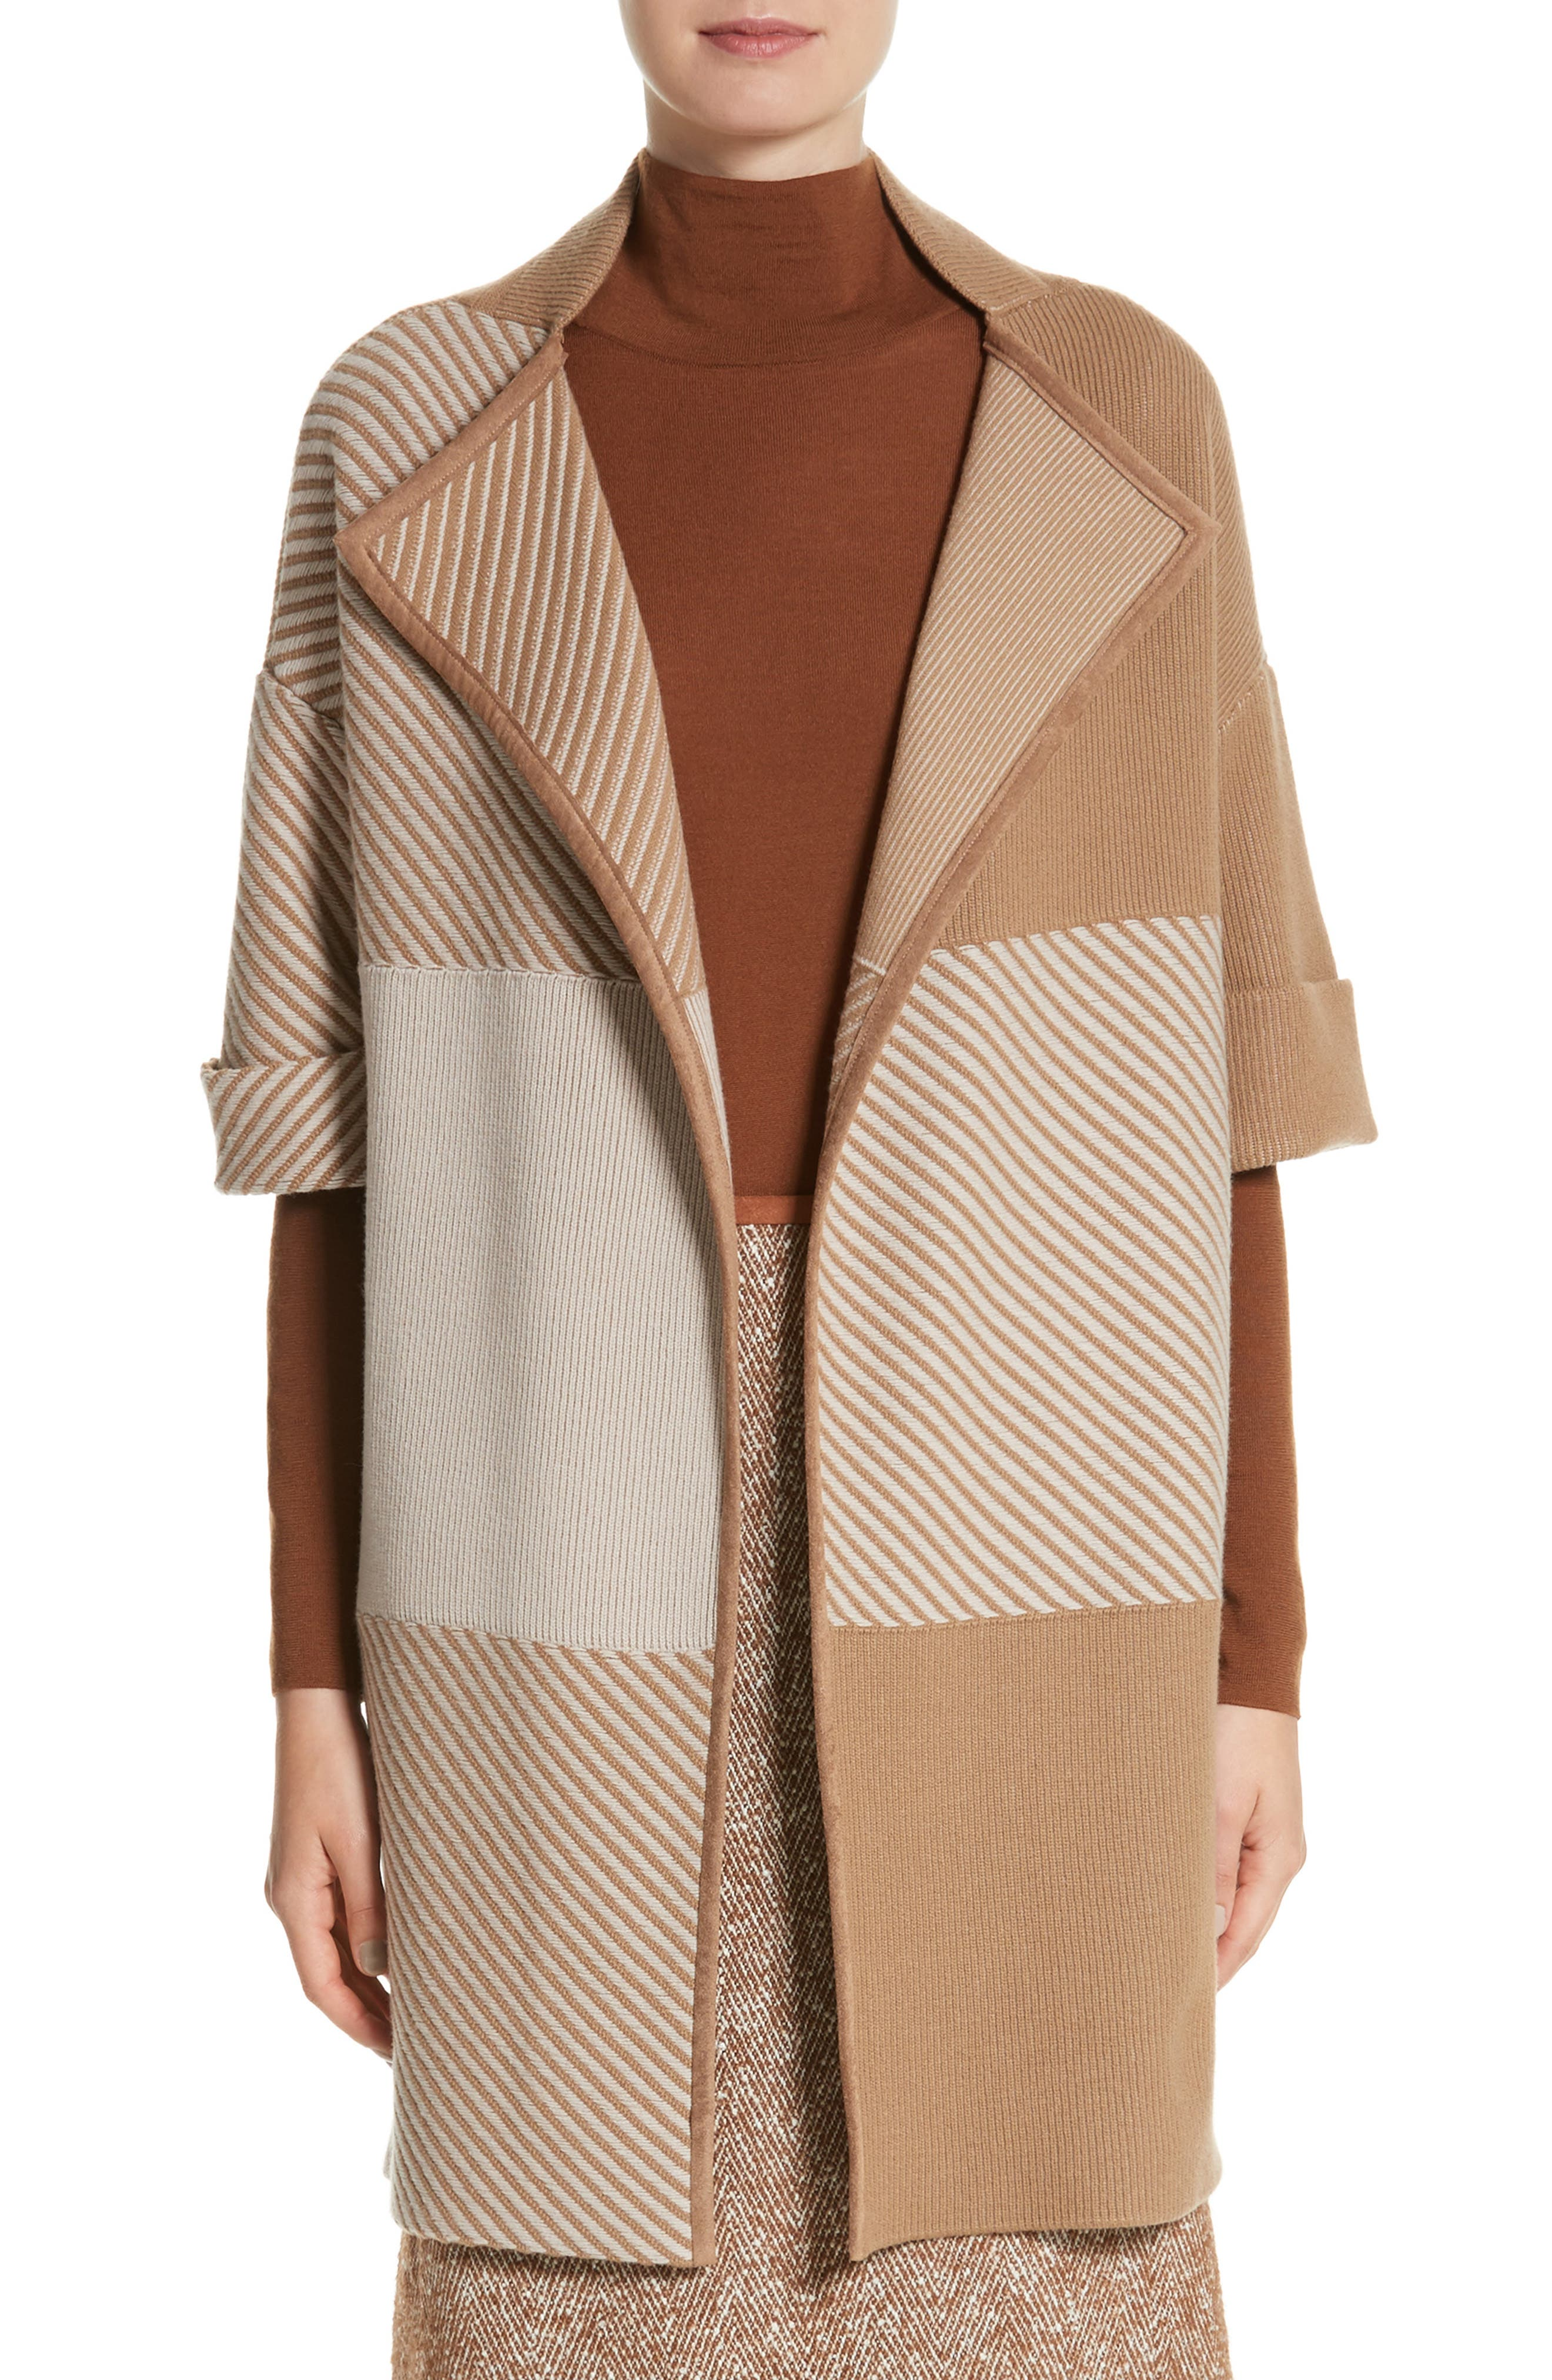 Lafayette 148 New York Flannel Bicolor Jacquard Coat